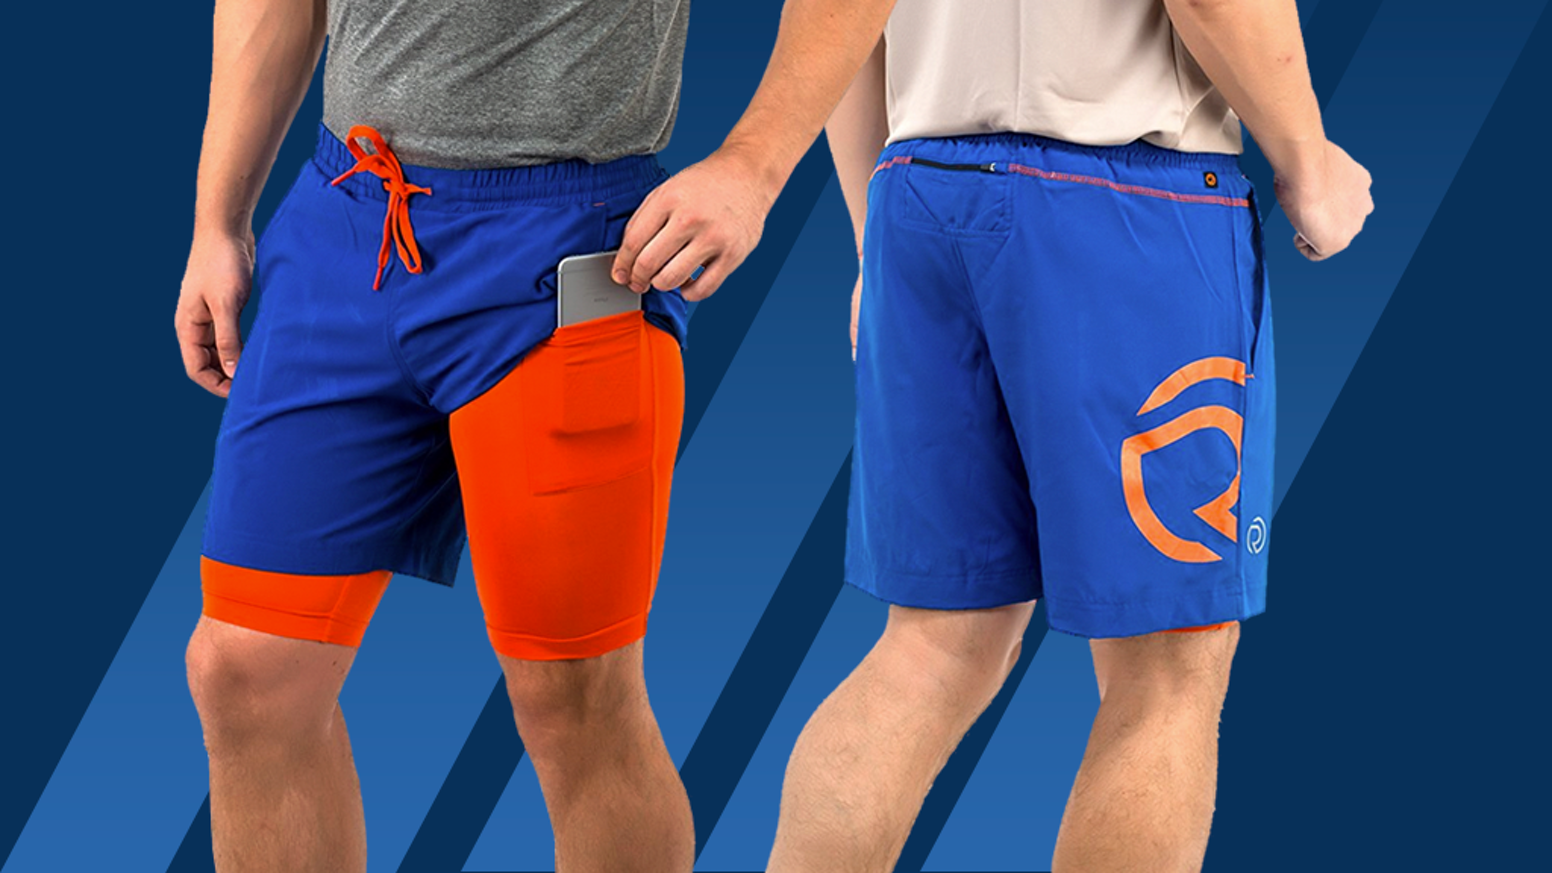 69202e8e6ab16 Innovative Shorts, Tights & Track Pants with Smartphone Pocket System. No  more bouncing or